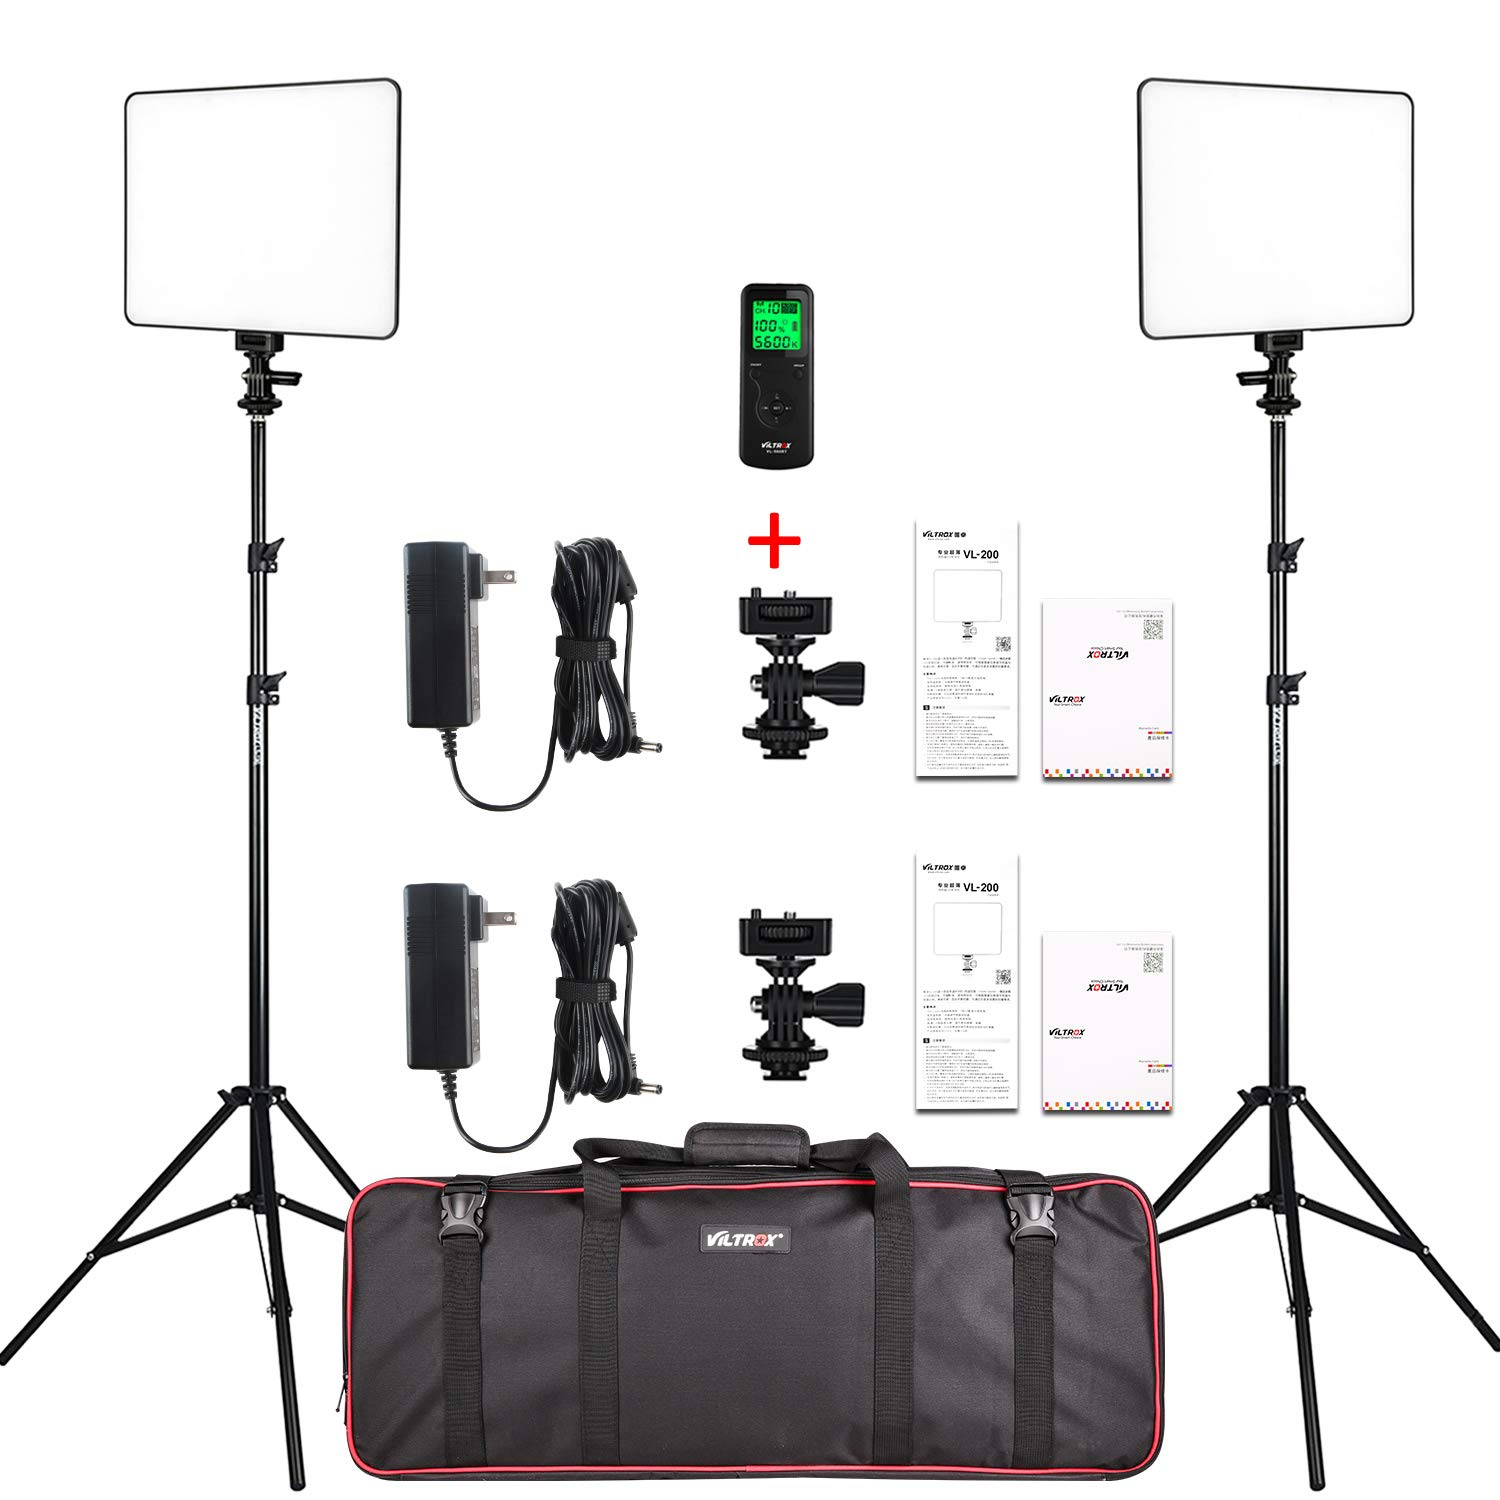 VILTROX 2-Pack VL-200 3300K-5600K CRI95 Super Slim LED Video Light Panel Photography Lighting Kit with Light Stand, Hot Shoe Adapter, Remote Controller, AC Adapter for YouTube Studio Video Shooting by VILTROX